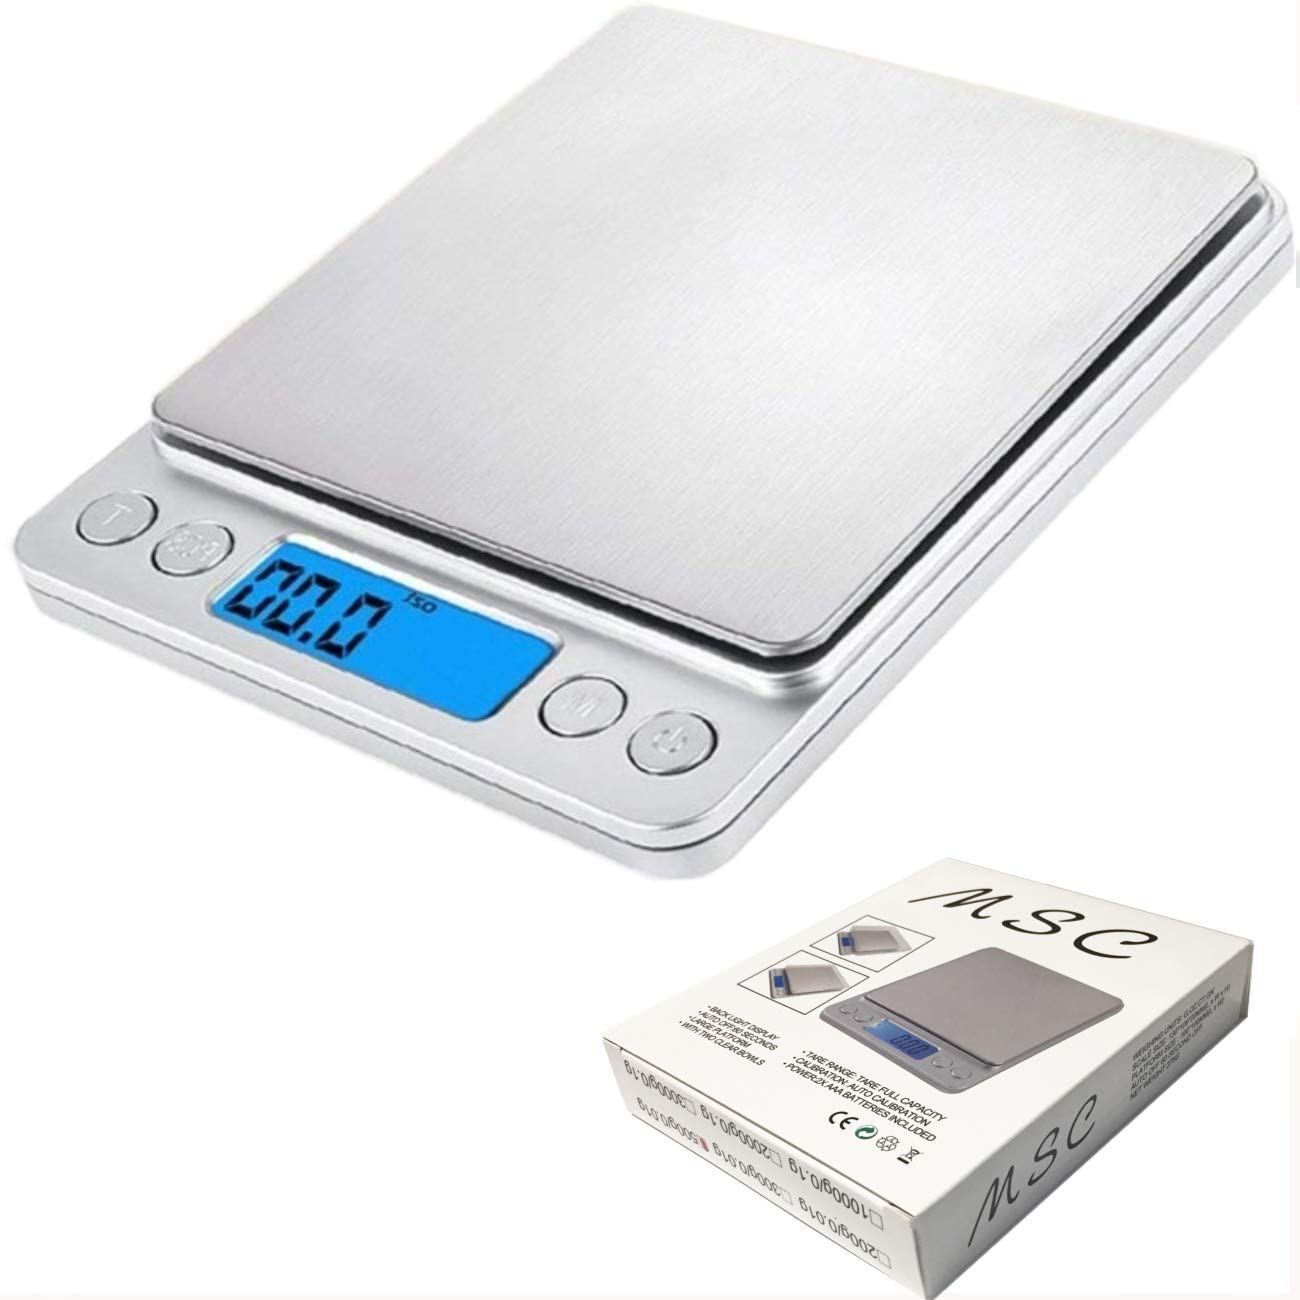 MSC Digital Kitchen Scales, (500g/ 0.01g) High-precision Pocket Food Kitchen Scales, Jewellery Scales, Tare and PCS Feature